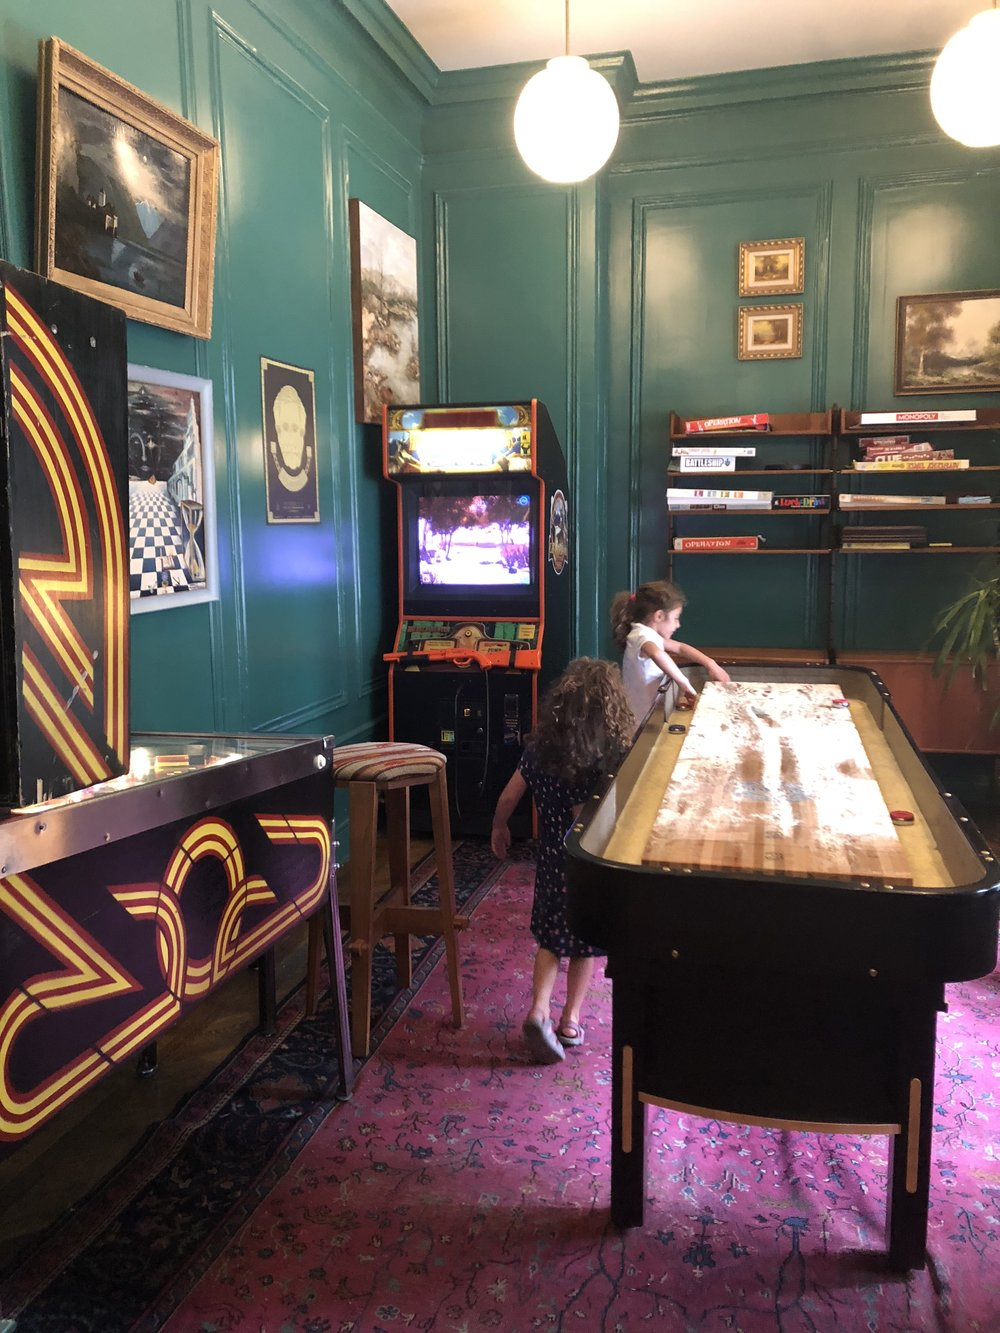 The Gorgeous Game Room on the Same Floor